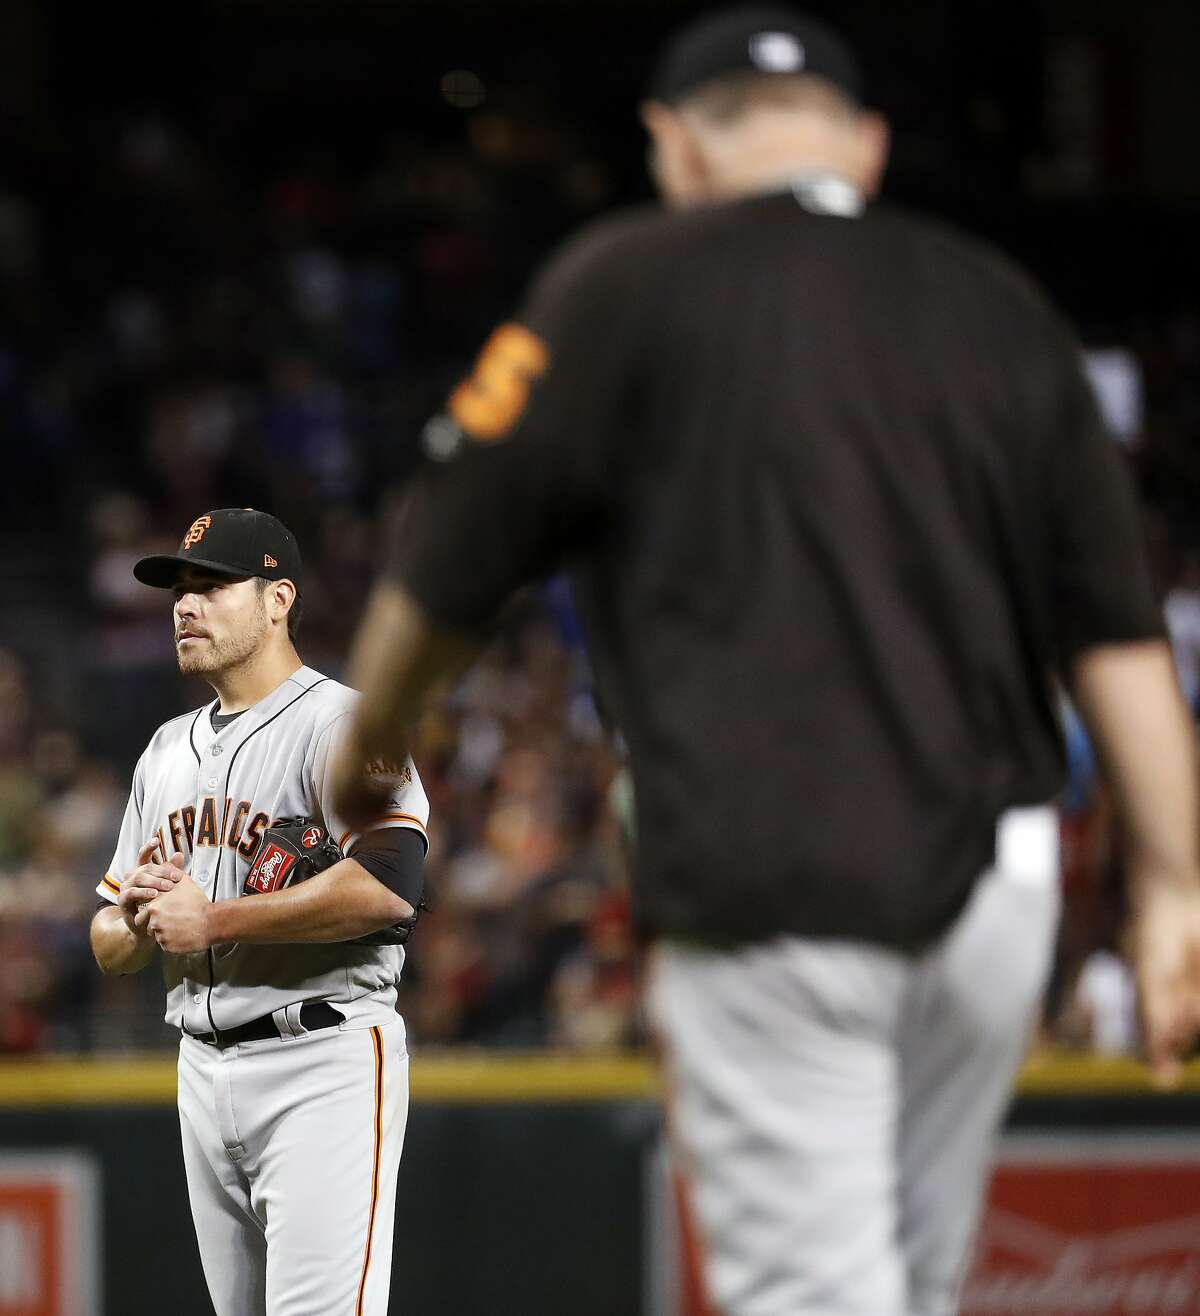 San Francisco Giants starting pitcher Matt Moore waits as manager Bruce Bochy heads out to remove Moore, who had given up a grand slam to the Arizona Diamondbacks during the second inning of a baseball game, Tuesday, Sept. 26, 2017, in Phoenix. (AP Photo/Matt York)